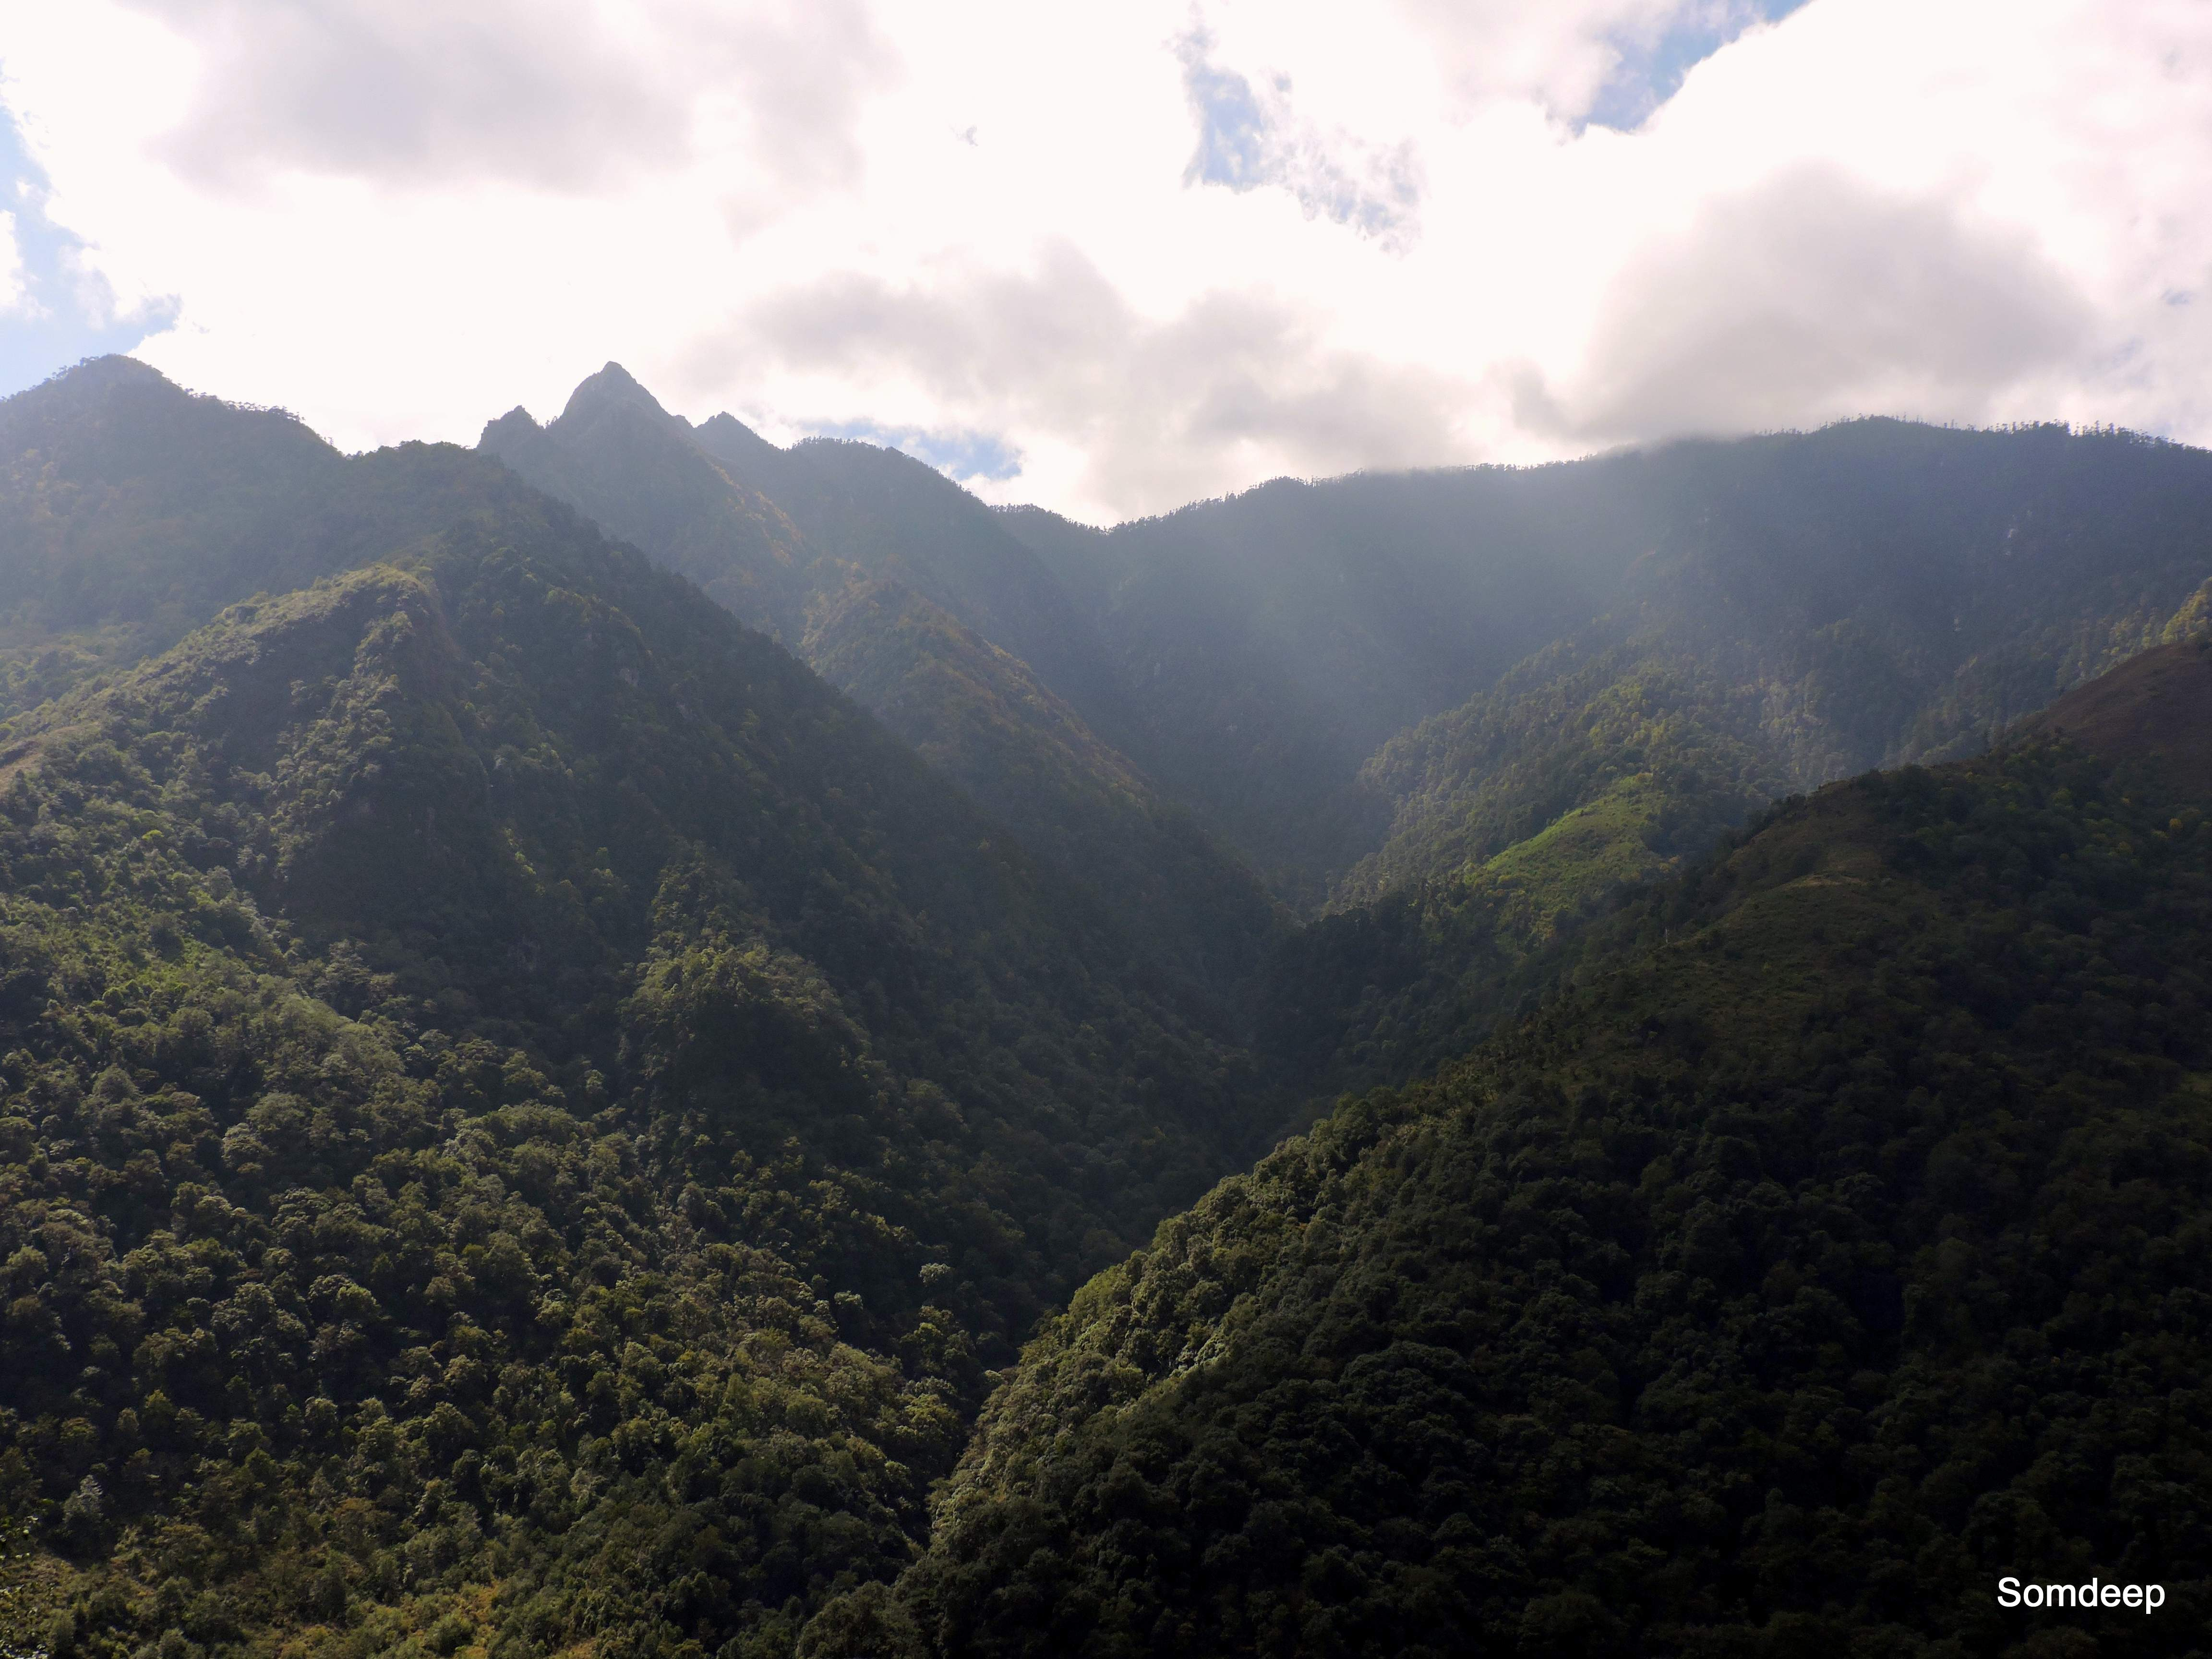 Sunlight escaping from the clouds, Arunachal Pradesh